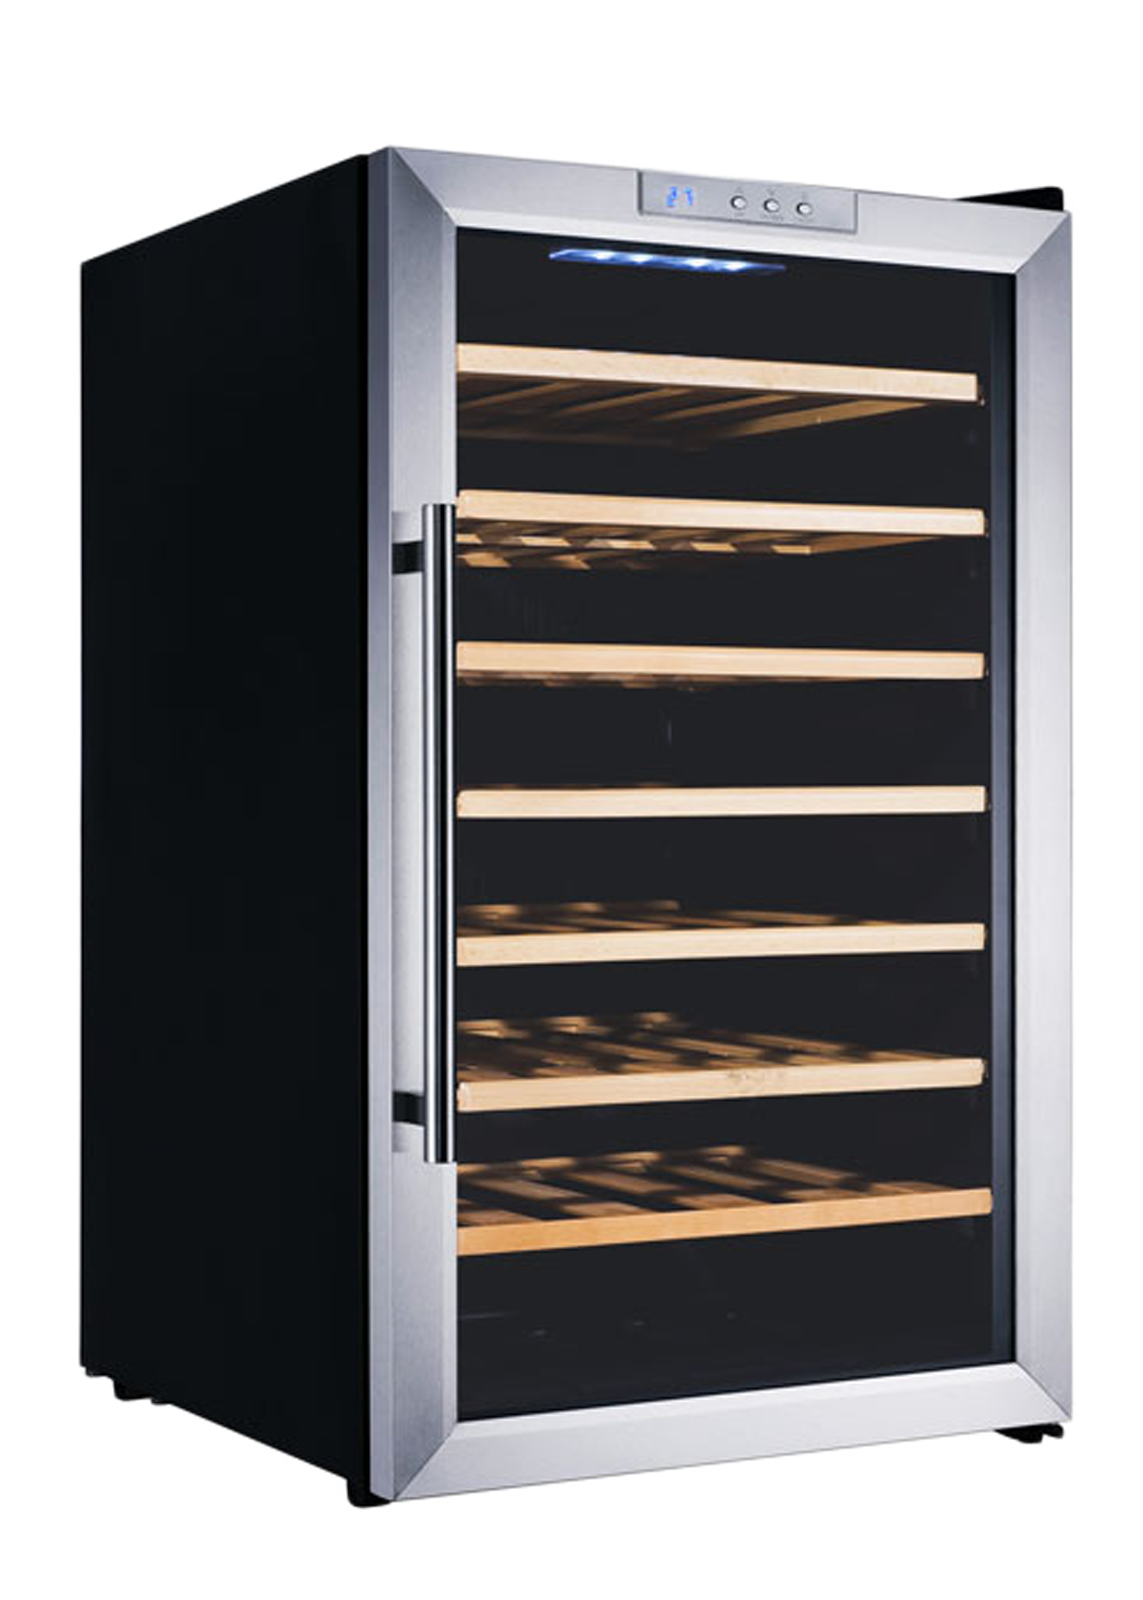 40 Bottles Wine Cooler with 1 Year Guarantee